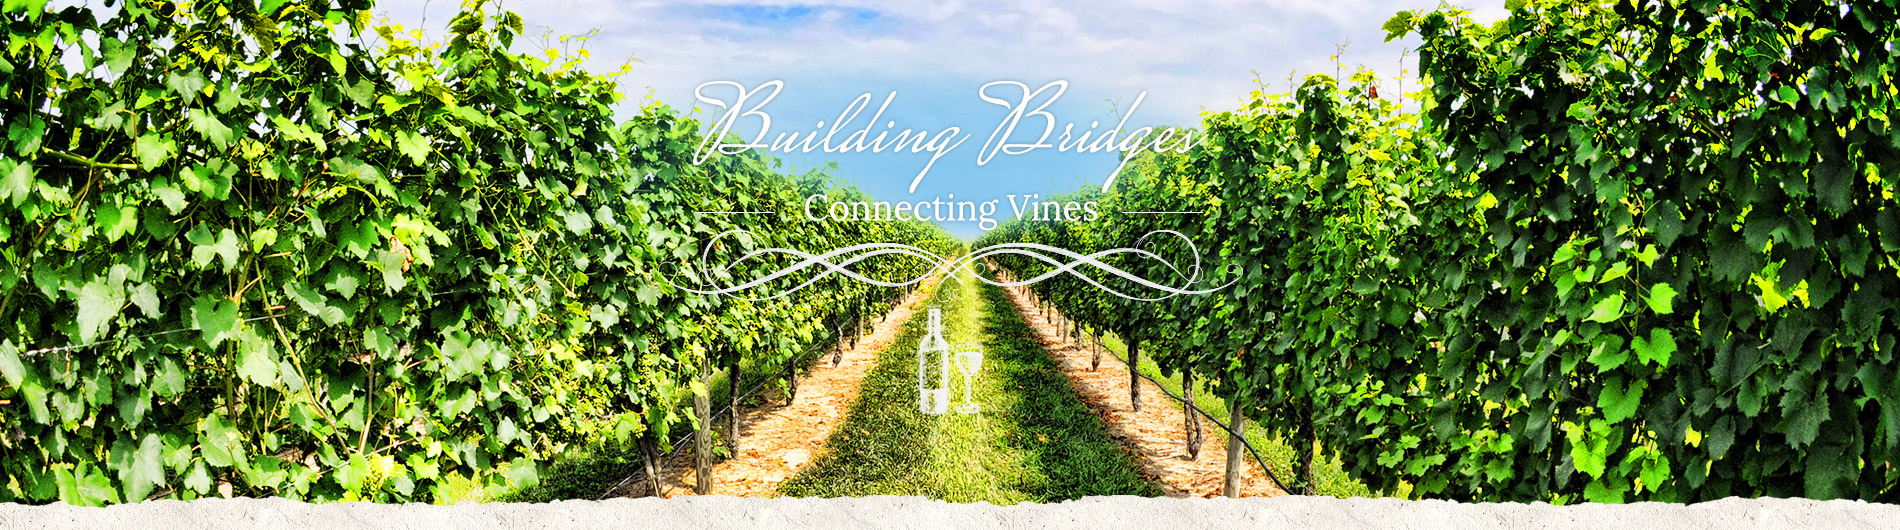 Building Bridges - Connecting Vines